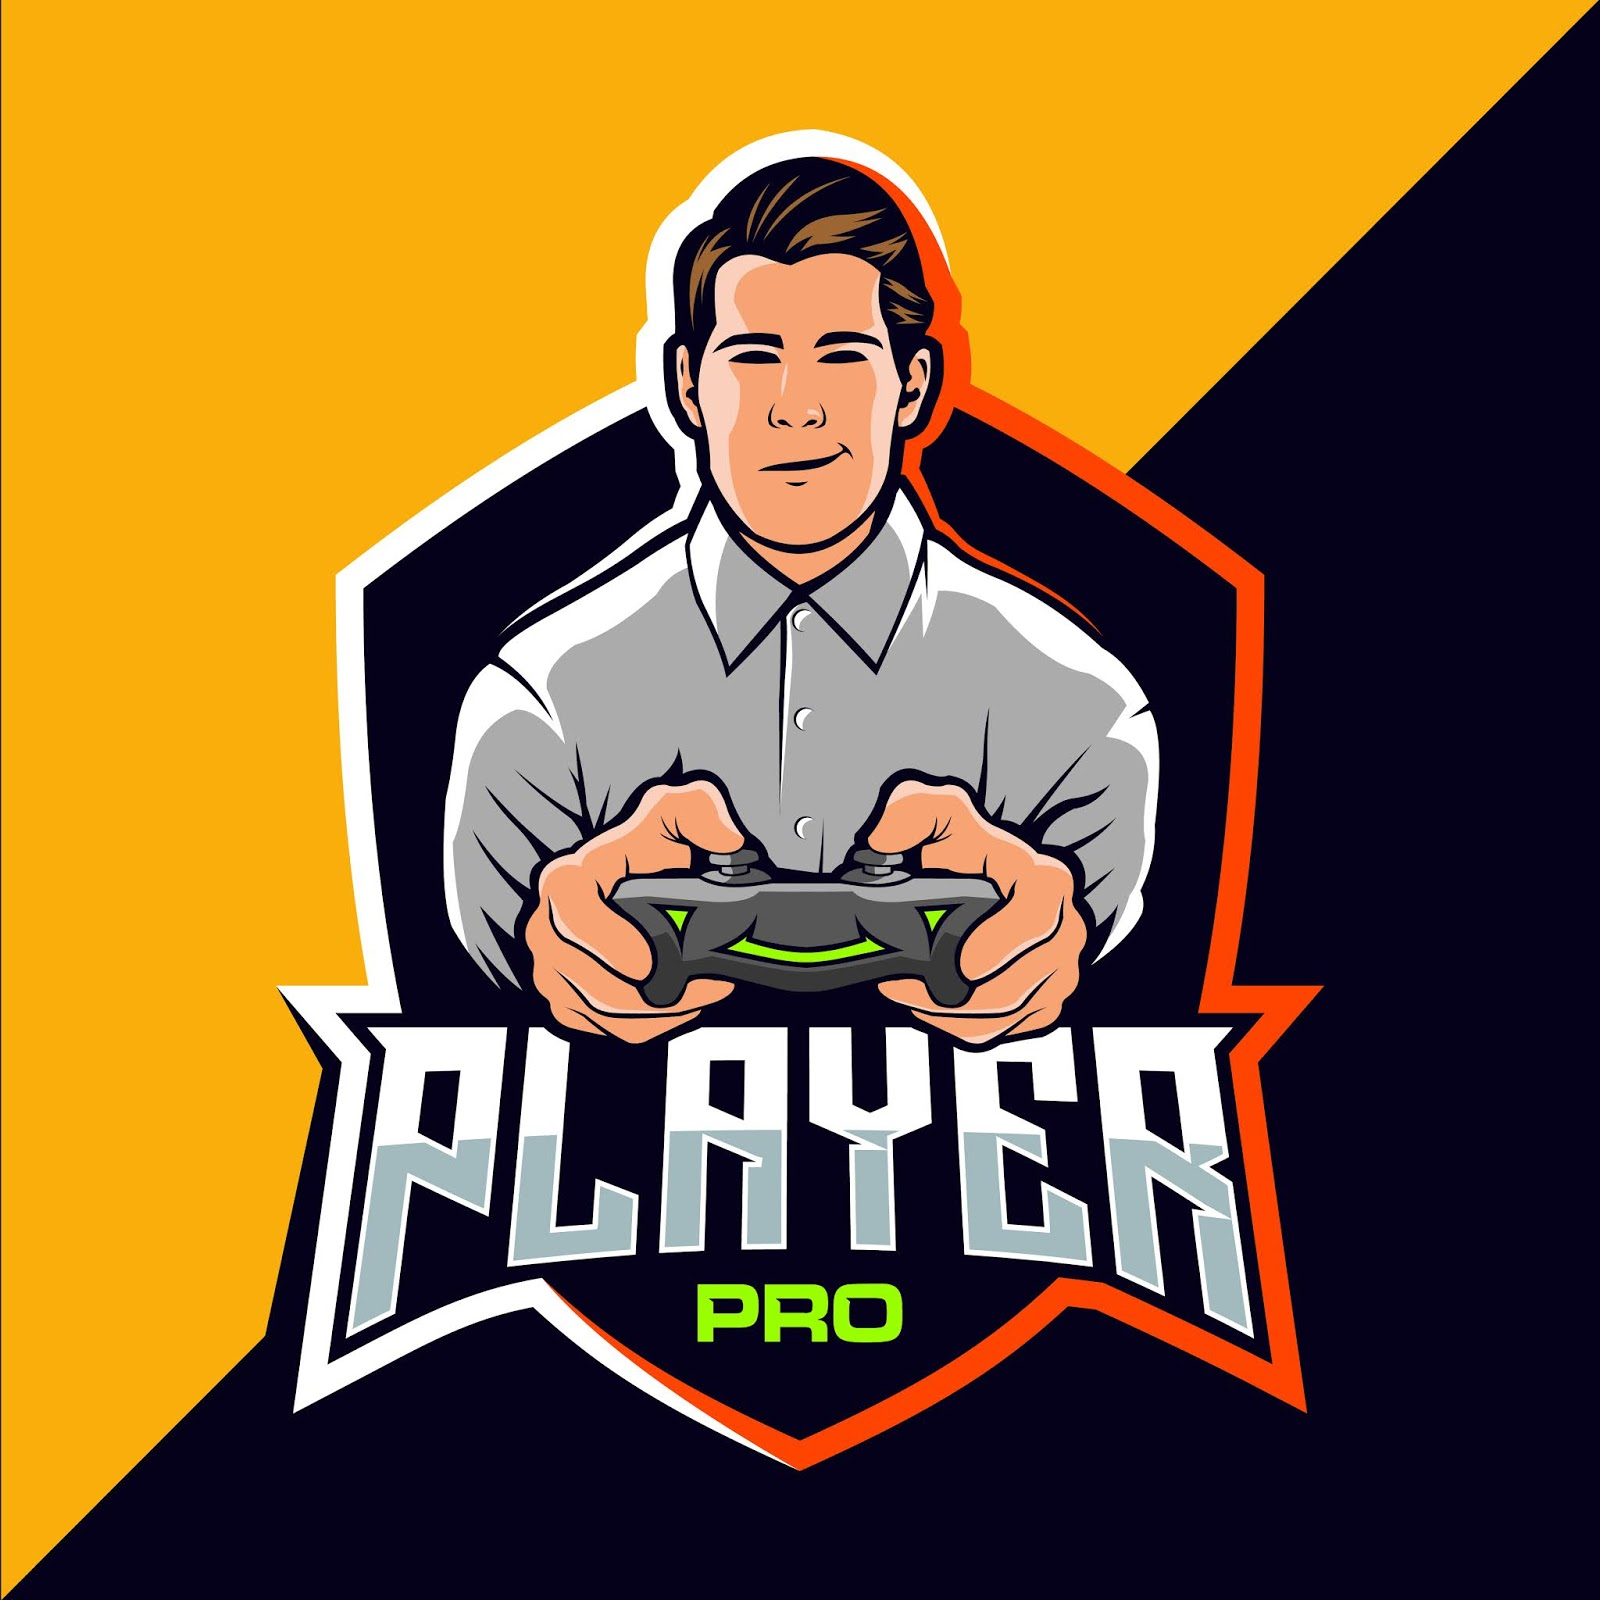 Pro Player Esport Game Cool Free Download Vector CDR, AI, EPS and PNG Formats